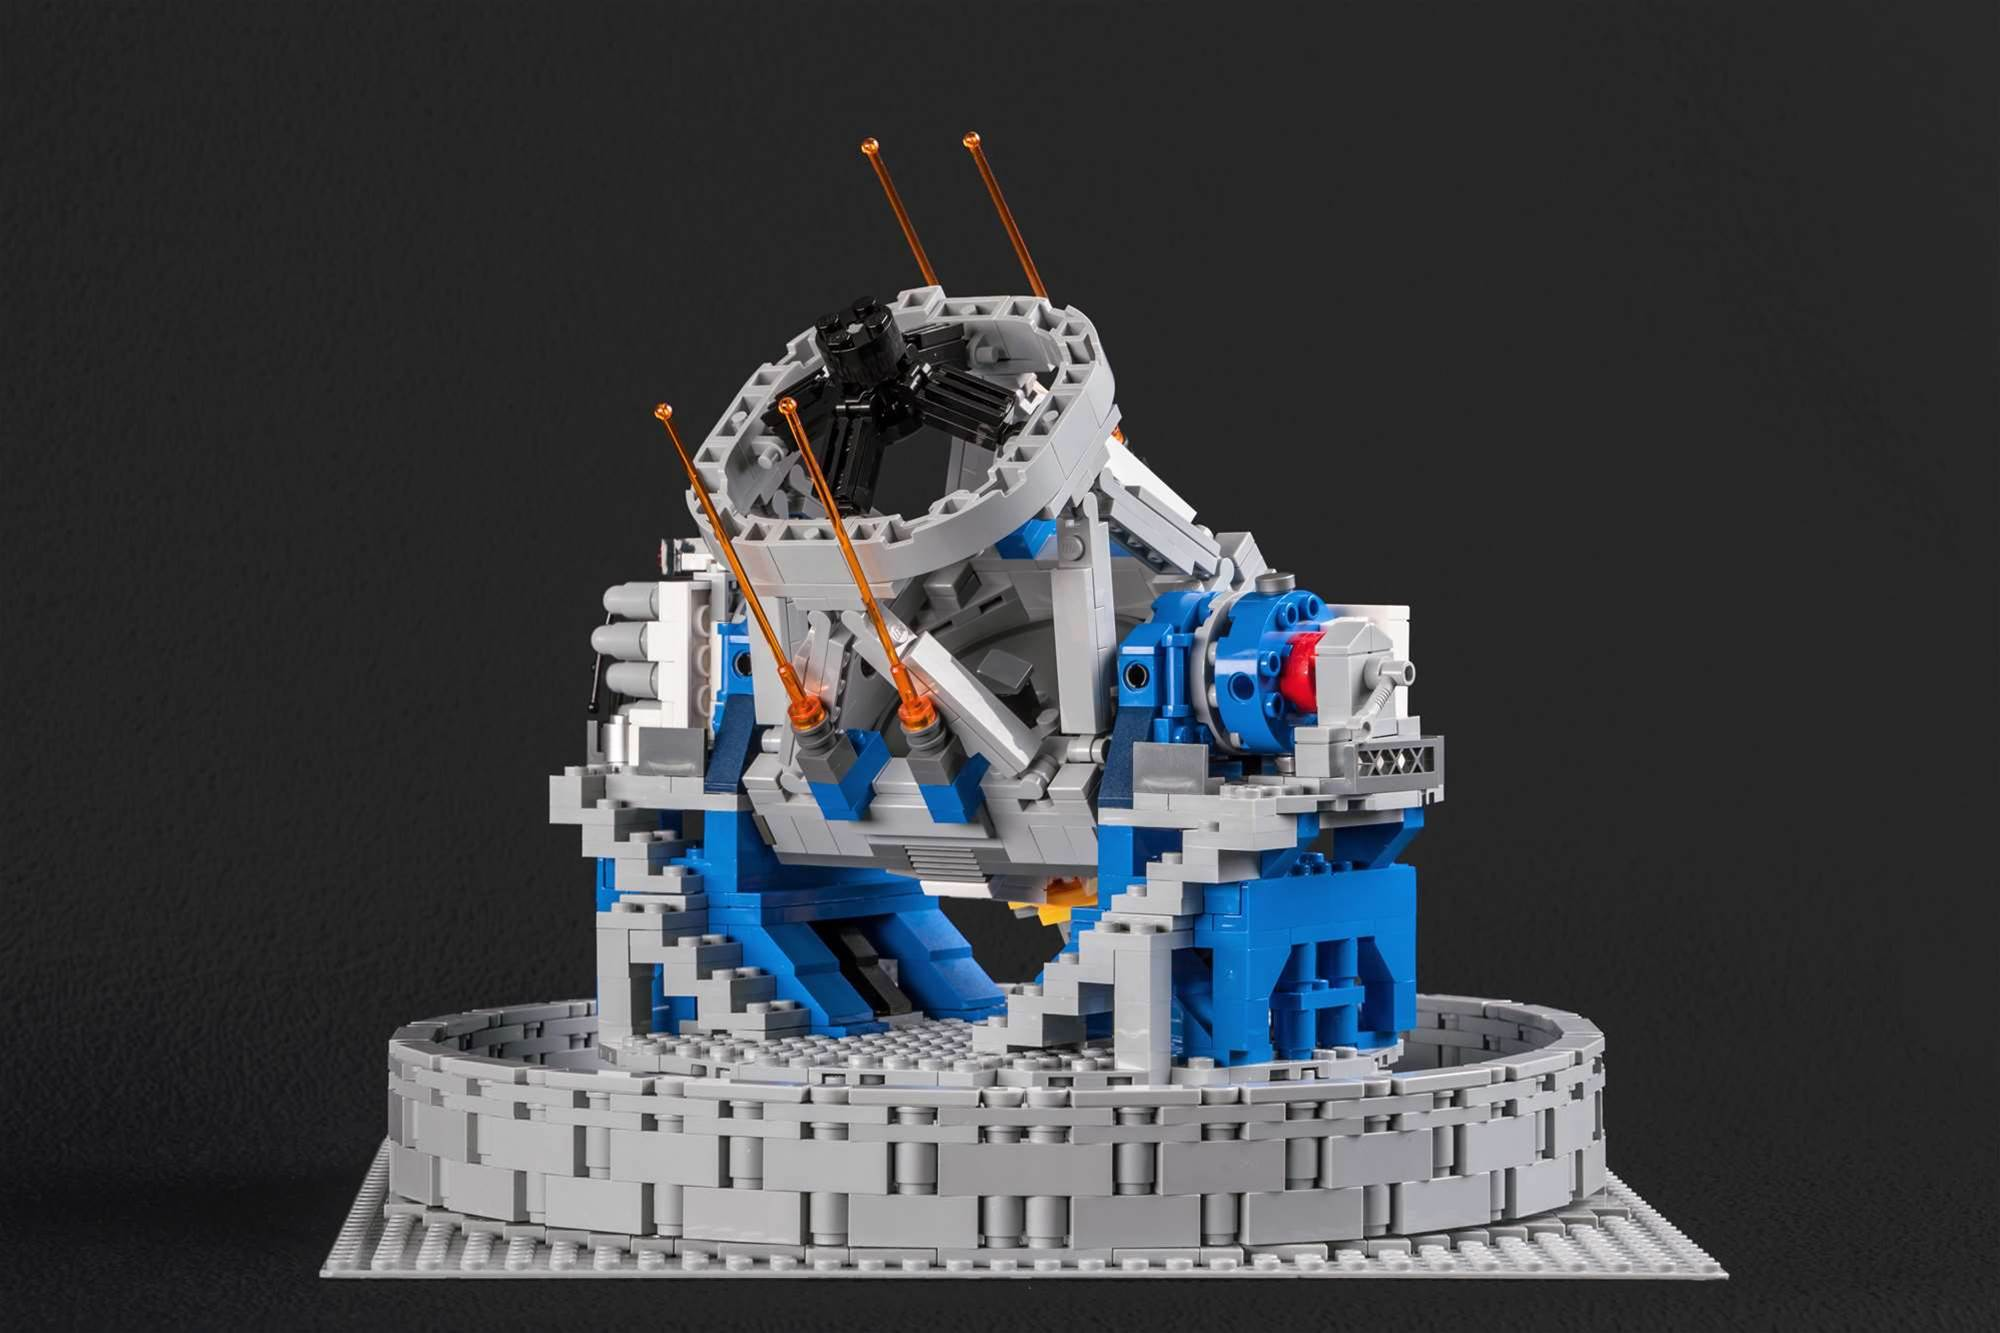 You Can Now Build Giant Space Telescopes Out of LEGO